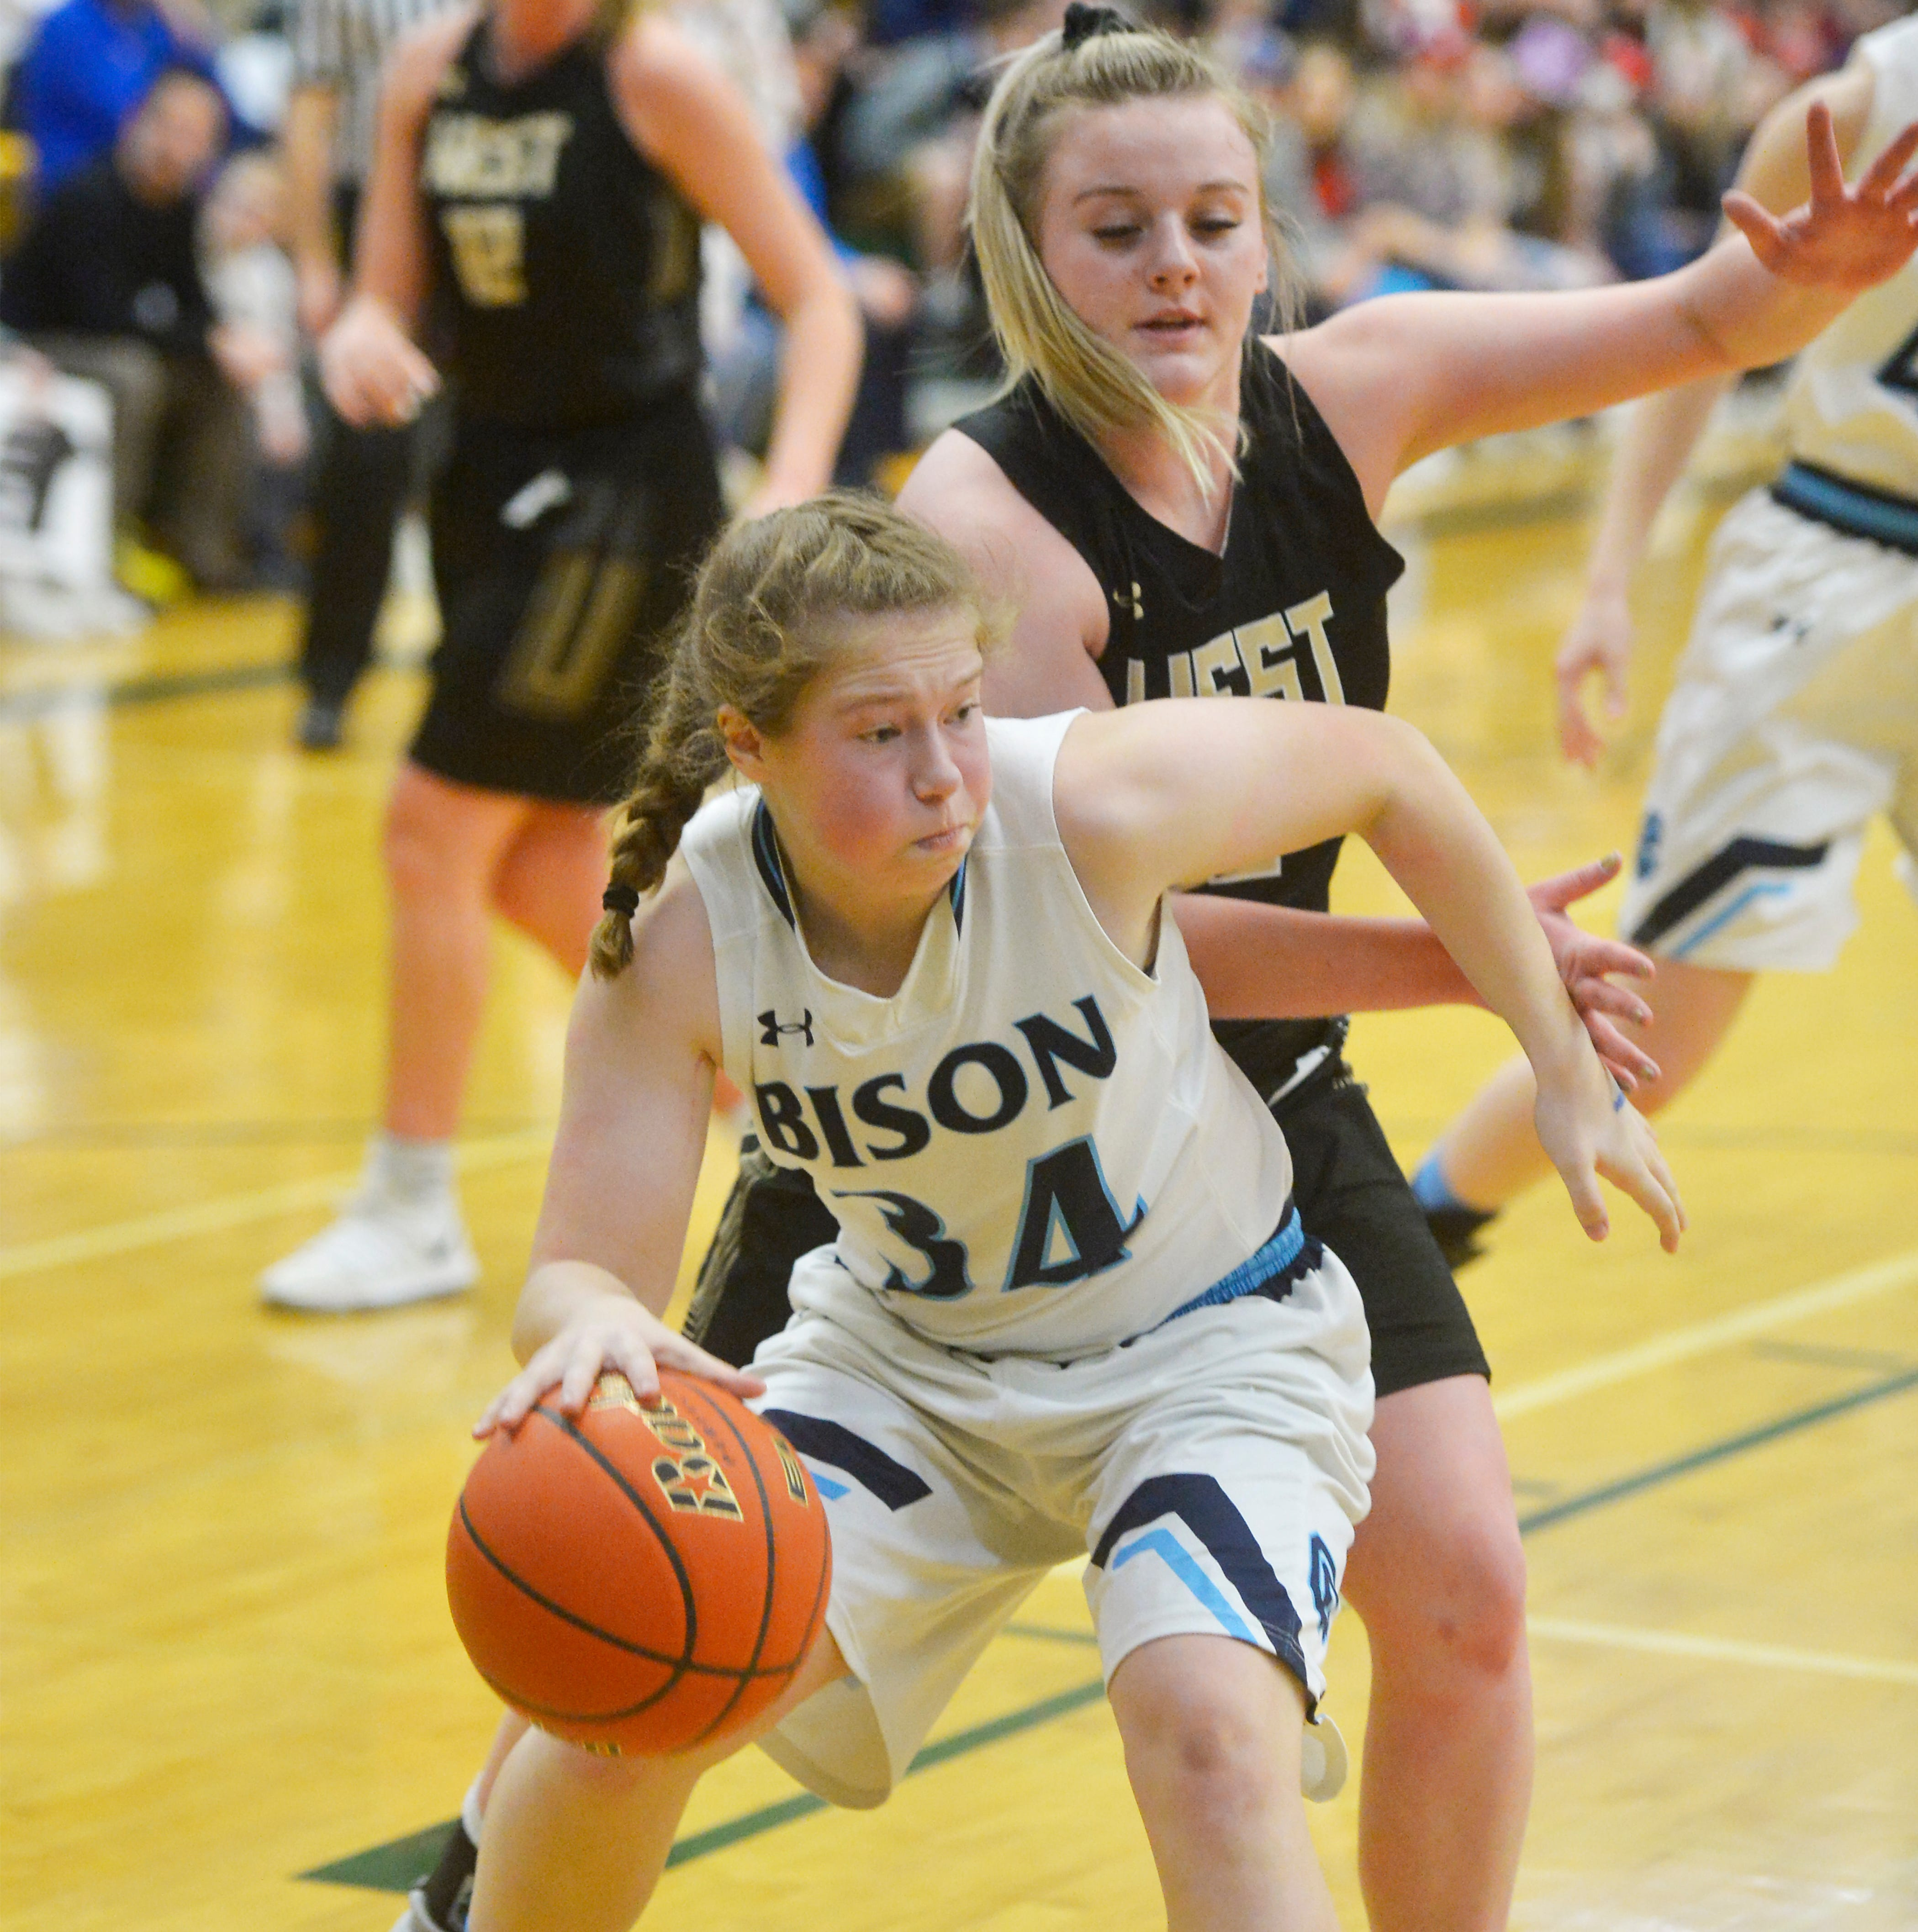 Schmitz: Bison girls 'well-prepared, ready to go' at State AA Tourney